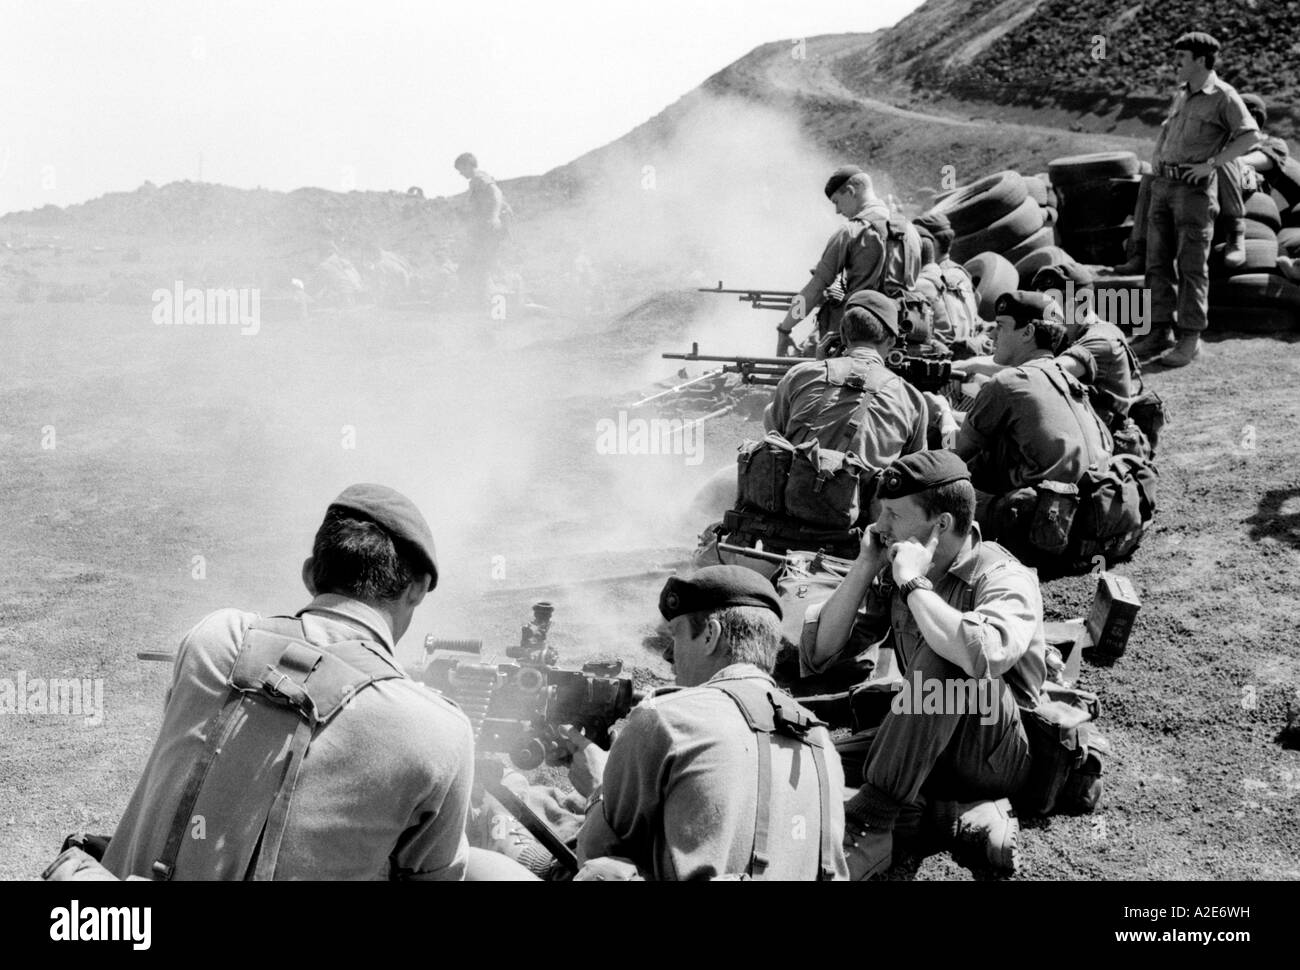 Fireplace Kaminofen Prag Test Machine Guns Black And White Stock Photos And Images Alamy